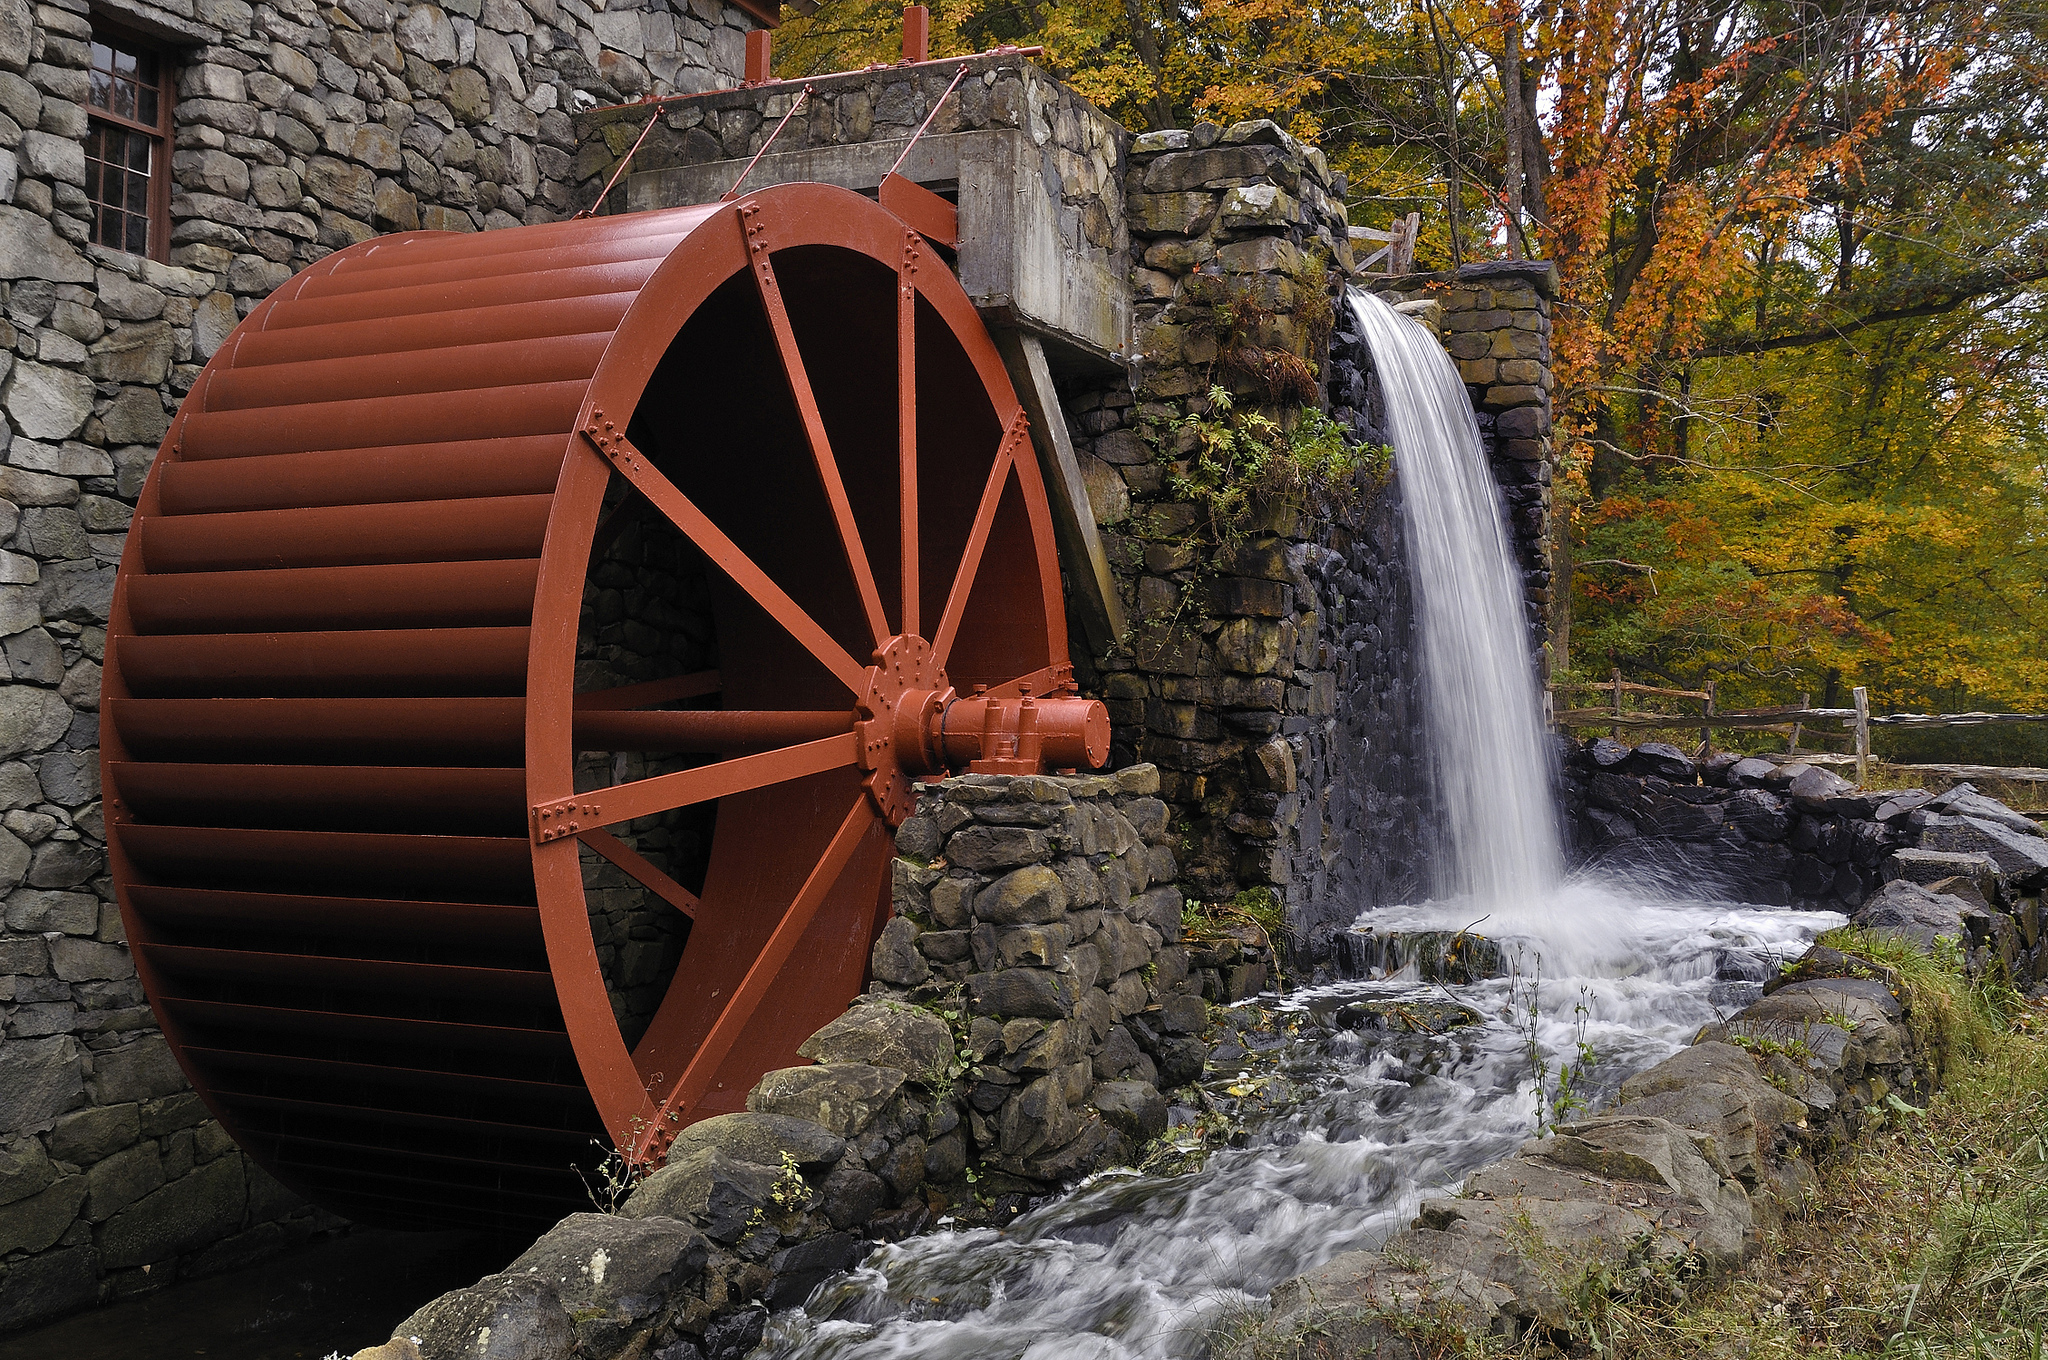 The water wheel at Sudbury's Wayside Inn Grist Mill. Image credit:  Massachusetts Office of Travel & Tourism / Creative Commons